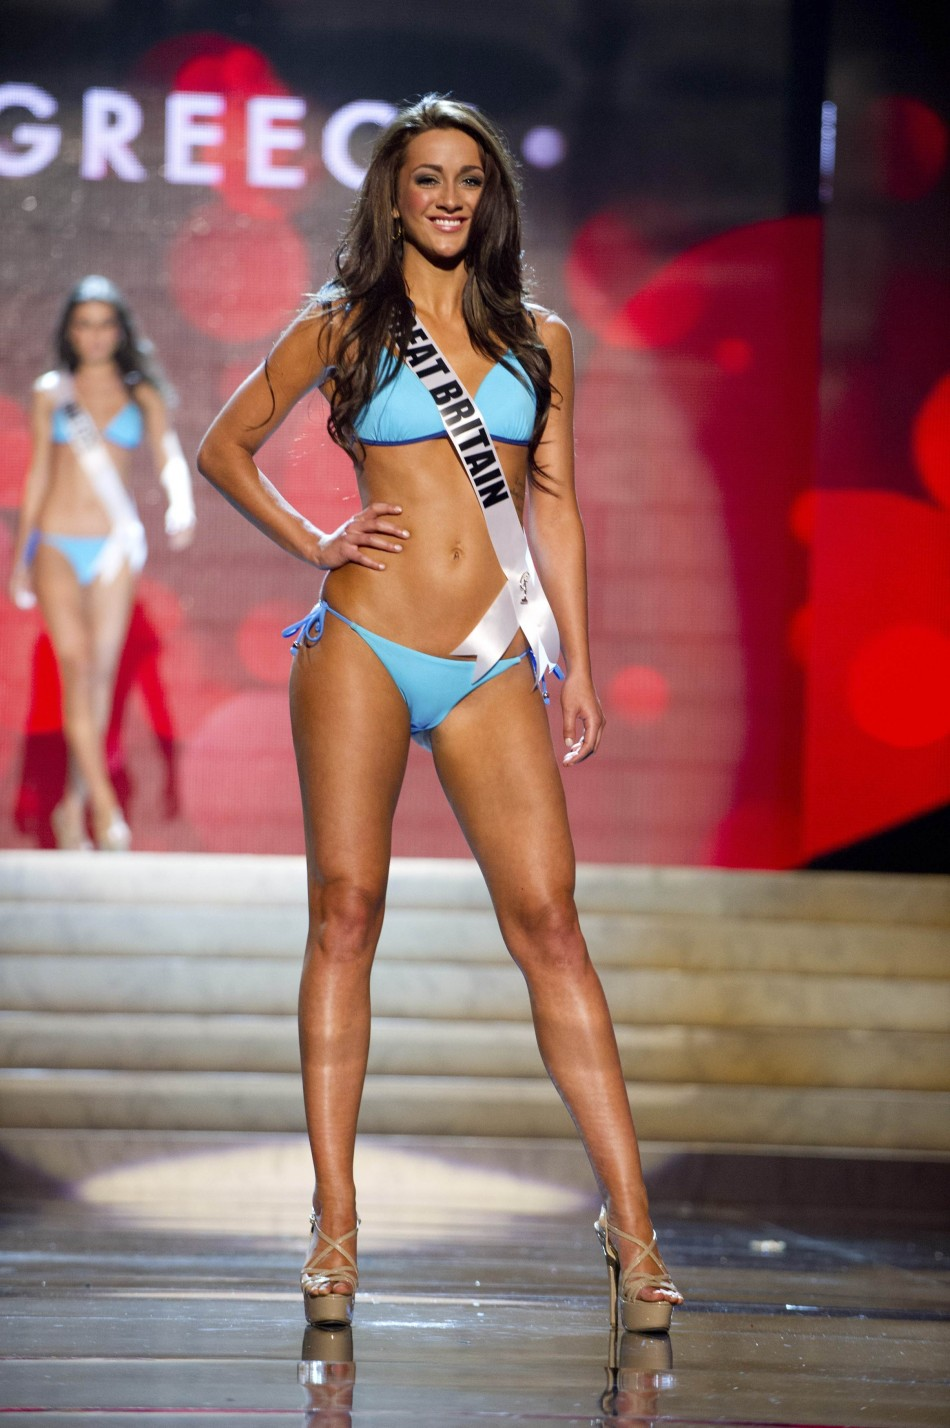 Miss Great Britain 2012 Holly Hale in the Swimsuit Competition of the 2012 Miss Universe Presentation Show at PH Live in Las Vegas